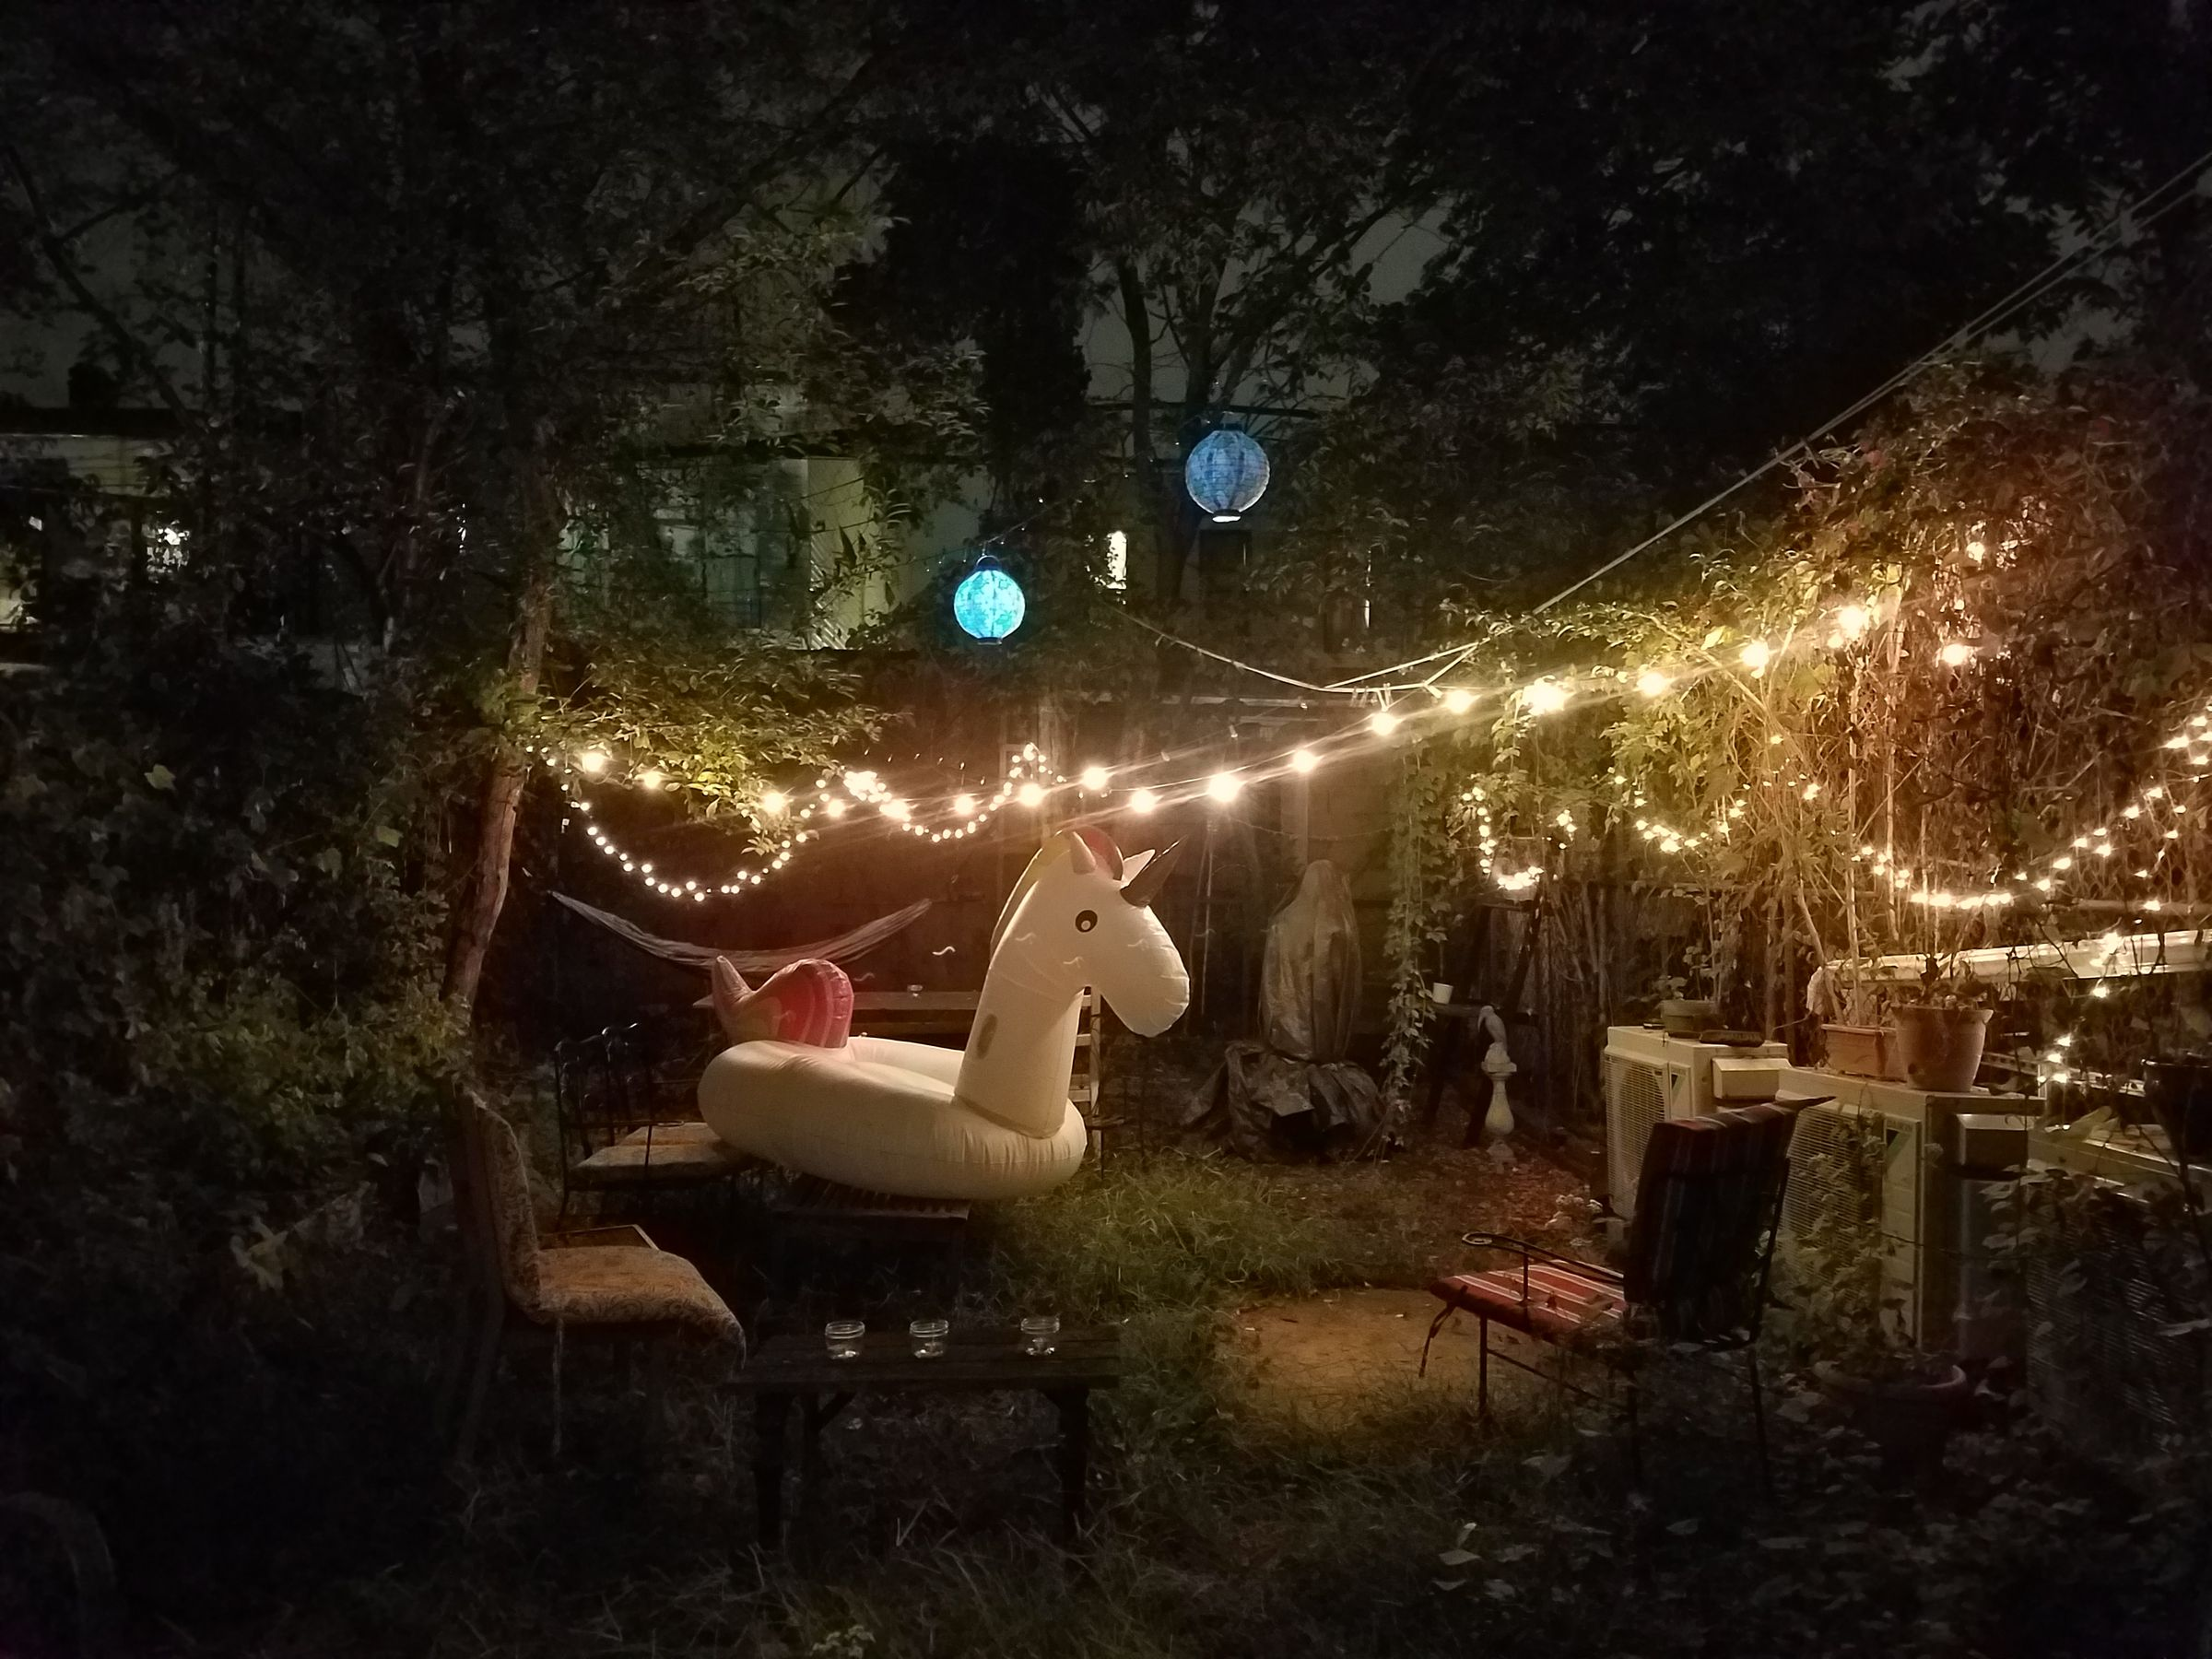 A grassy, urban back yard at night, illuminated by a couple of hanging crepe lanterns and several strings of lights. A white inflatable pool unicorn rests on a table and bench.